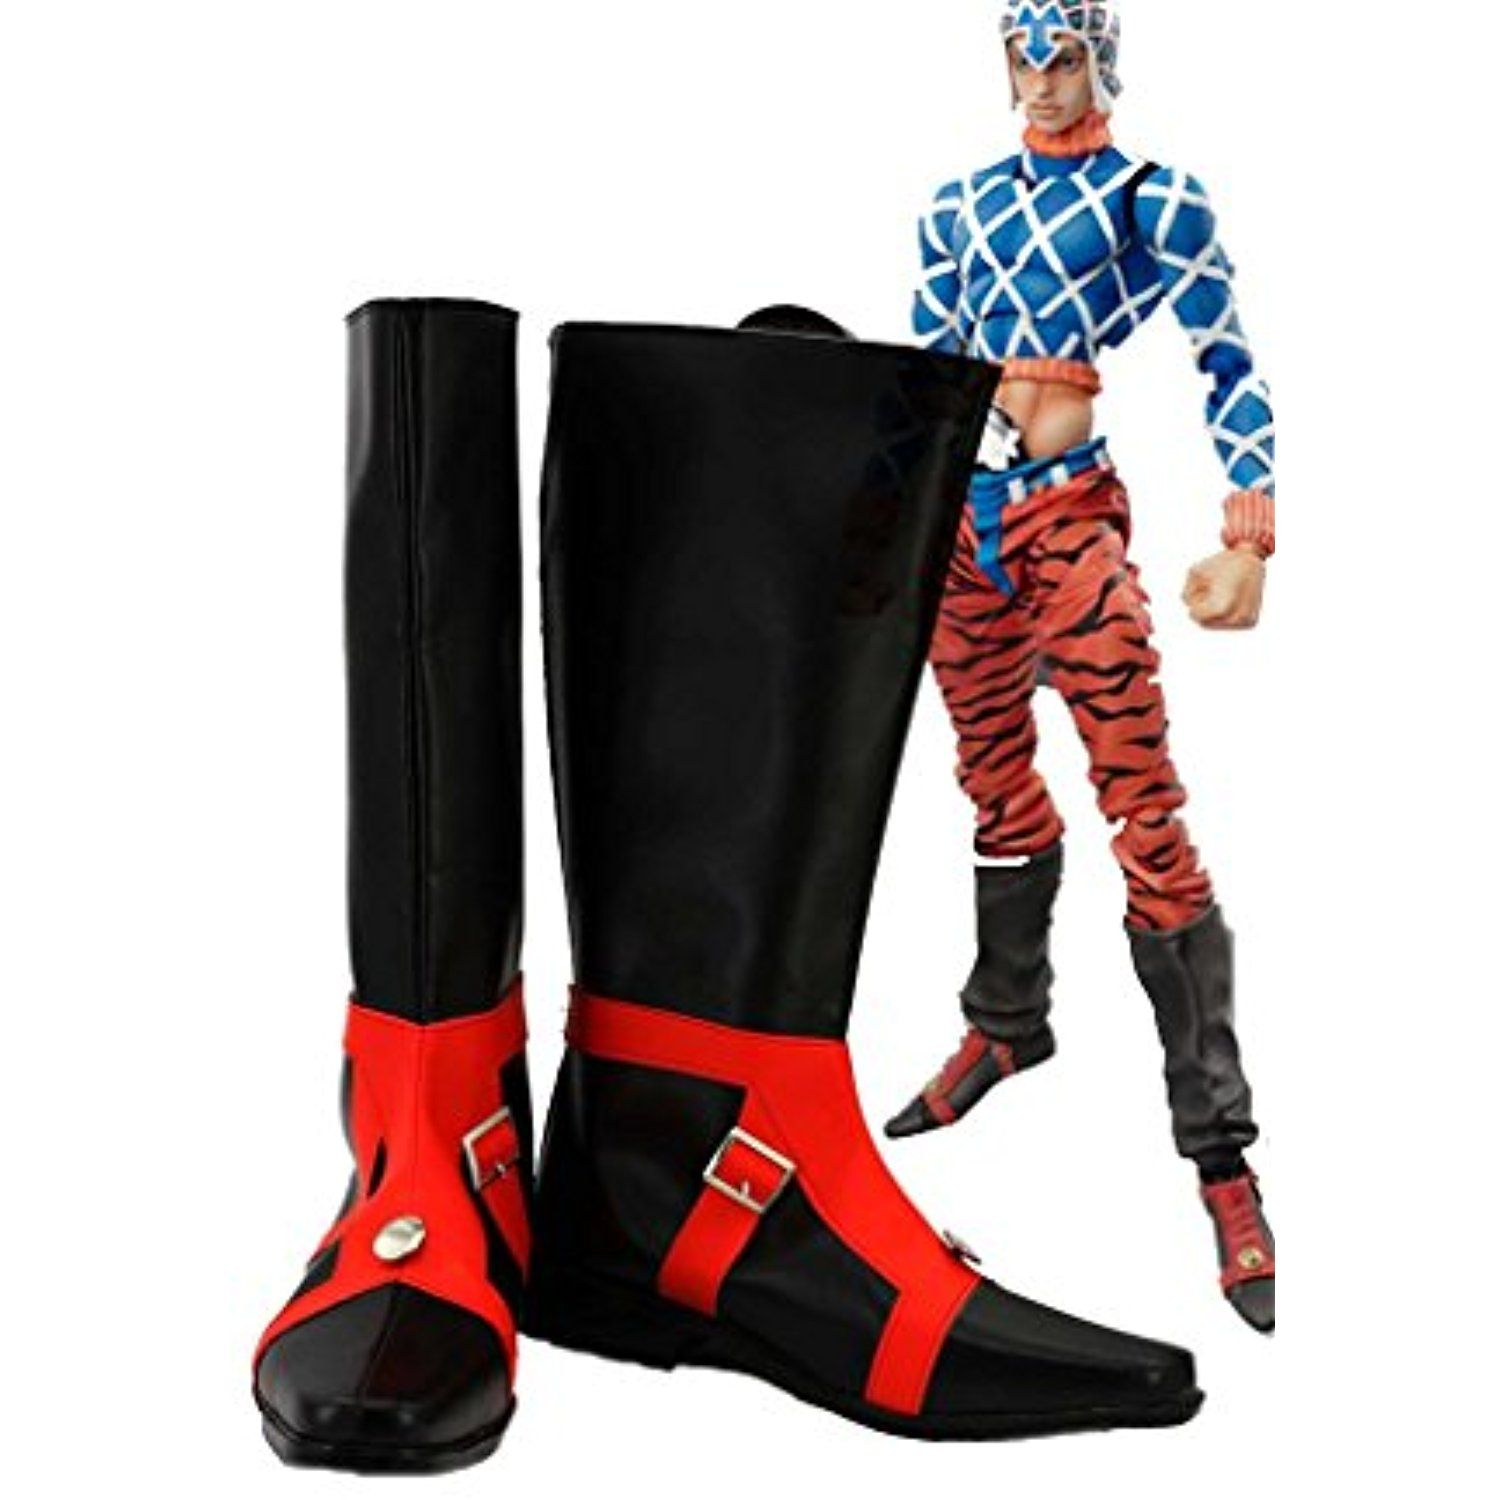 JOJO'S BIZARRE ADVENTURE 5 GUIDO MISTA Cosplay Shoes Black Boots Custom Made